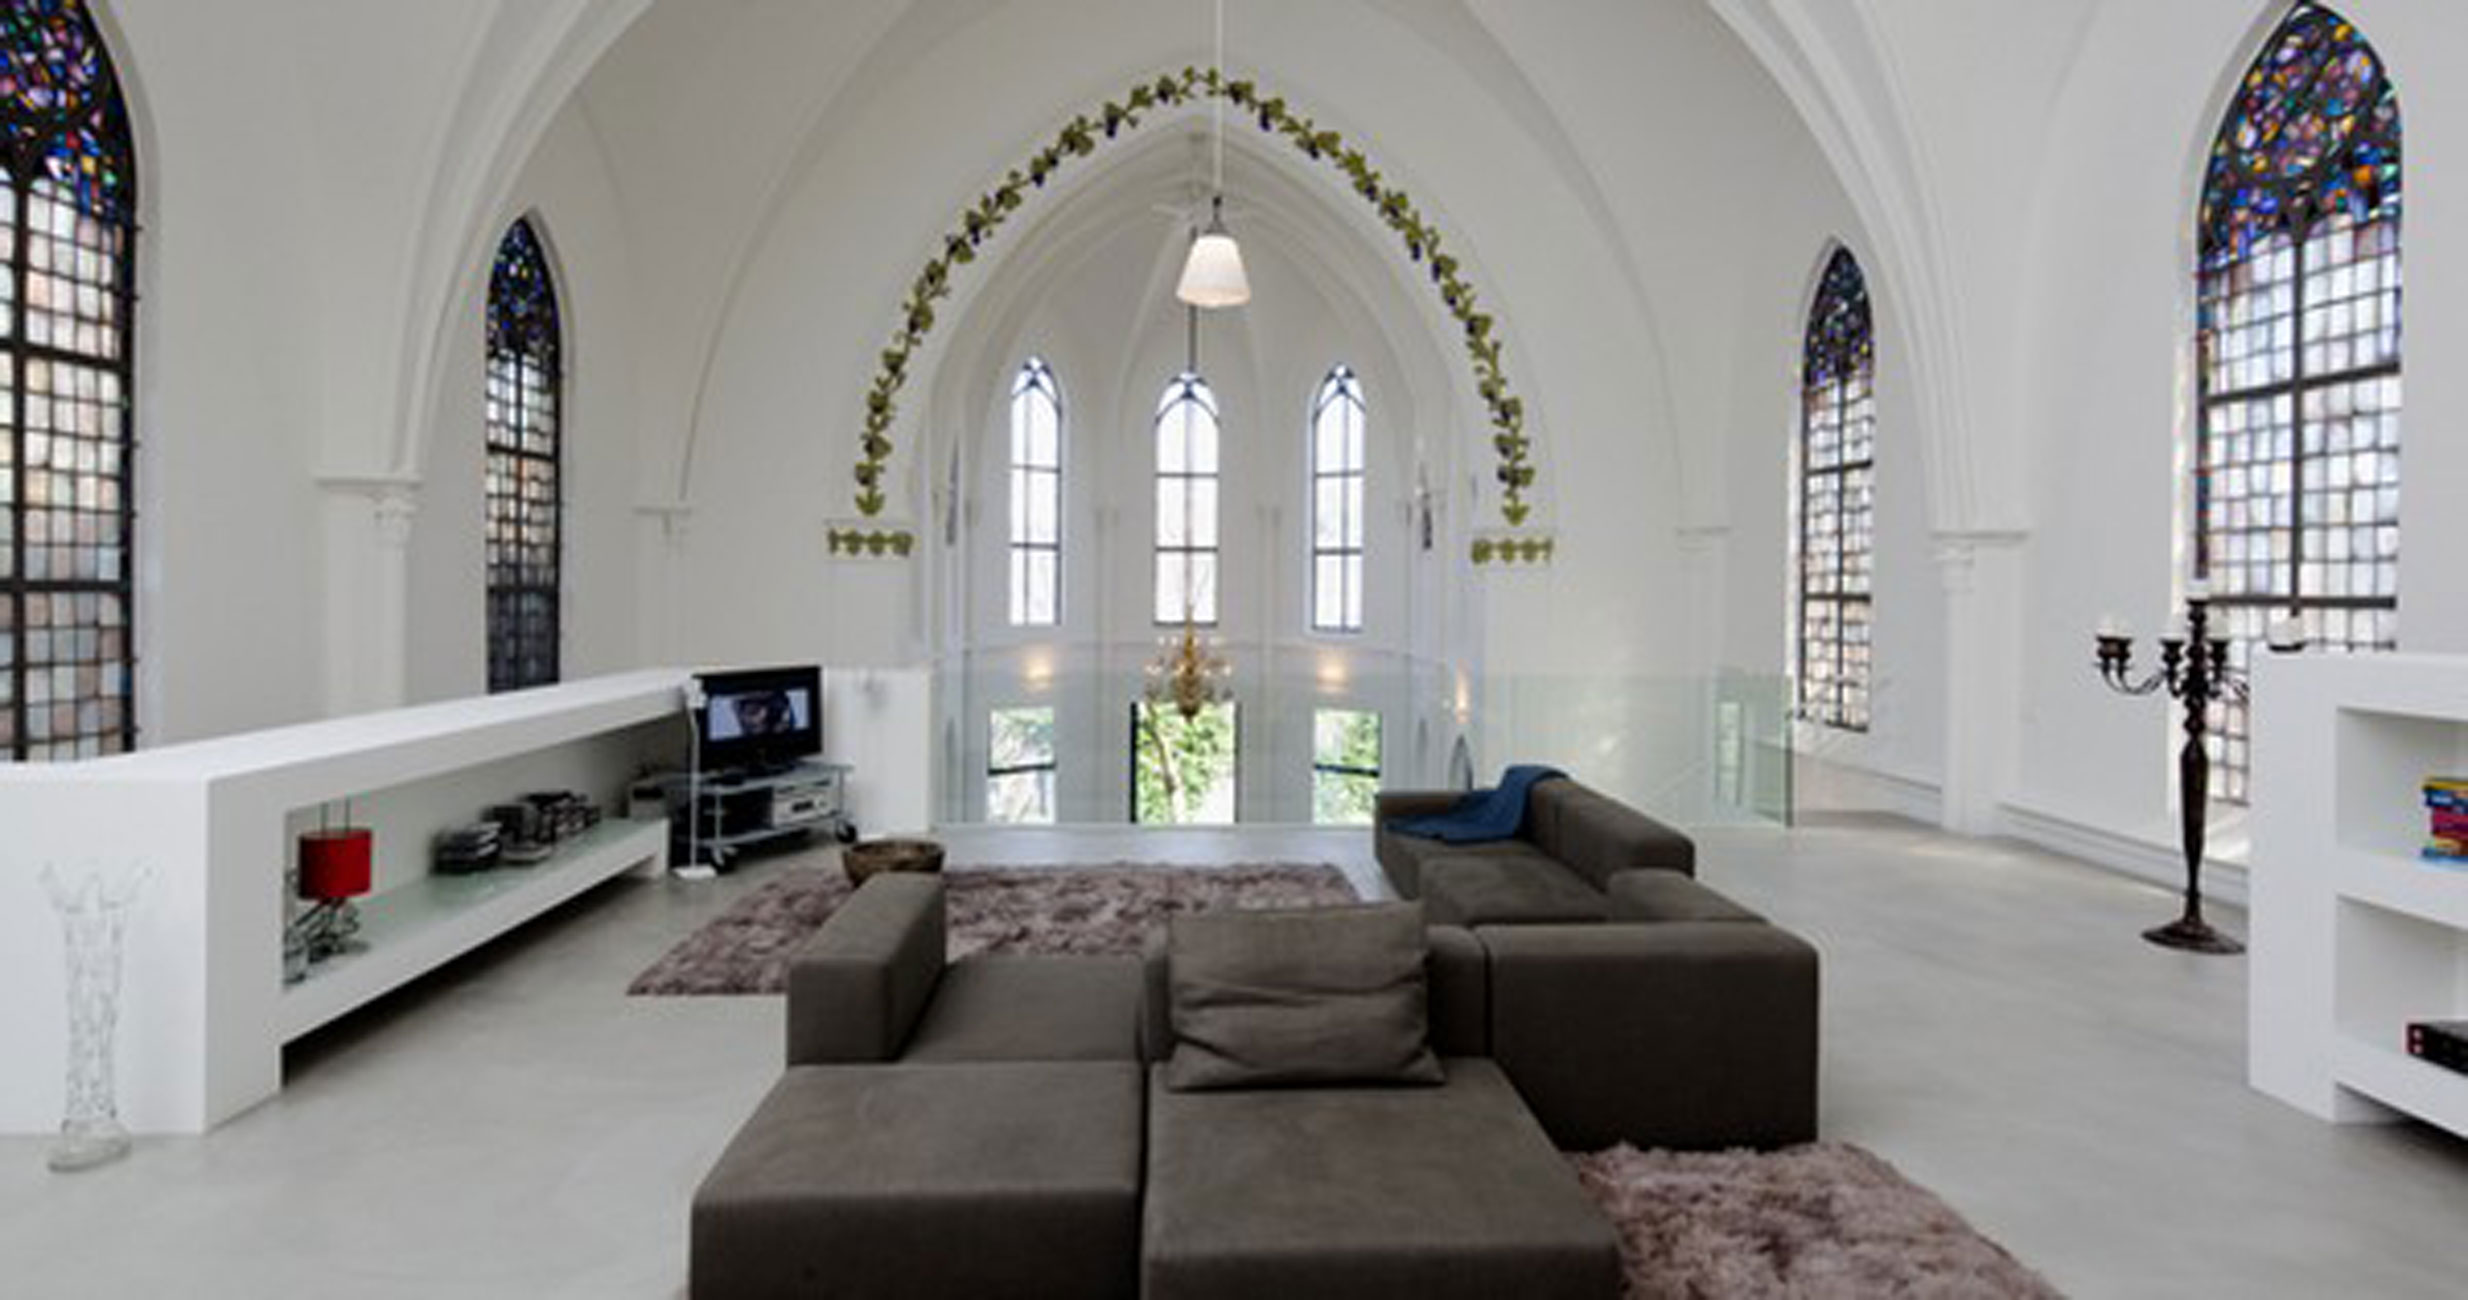 Gothic Church Turned Into White Contemporary Home In 2009